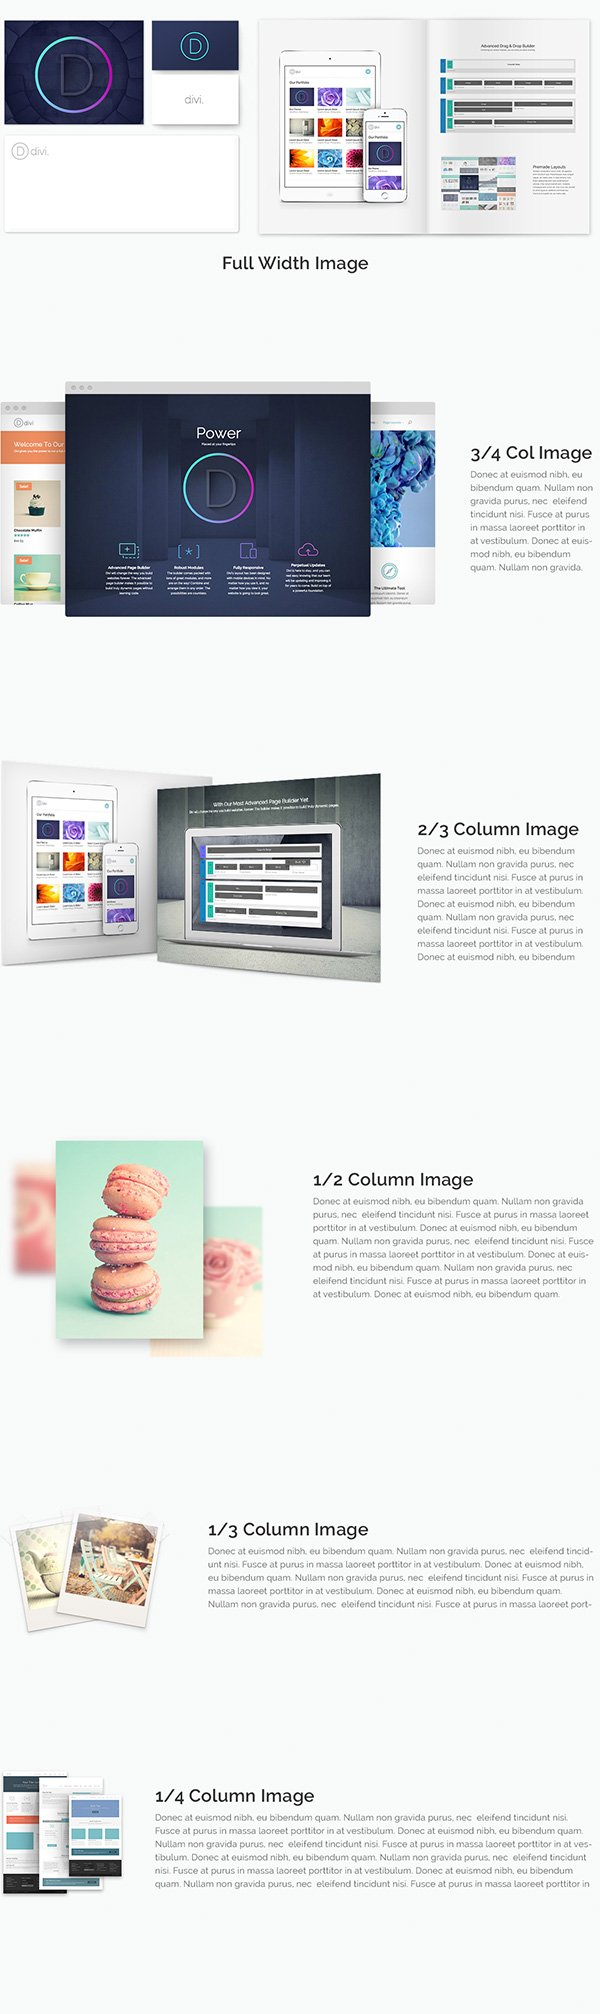 divi-image-samples